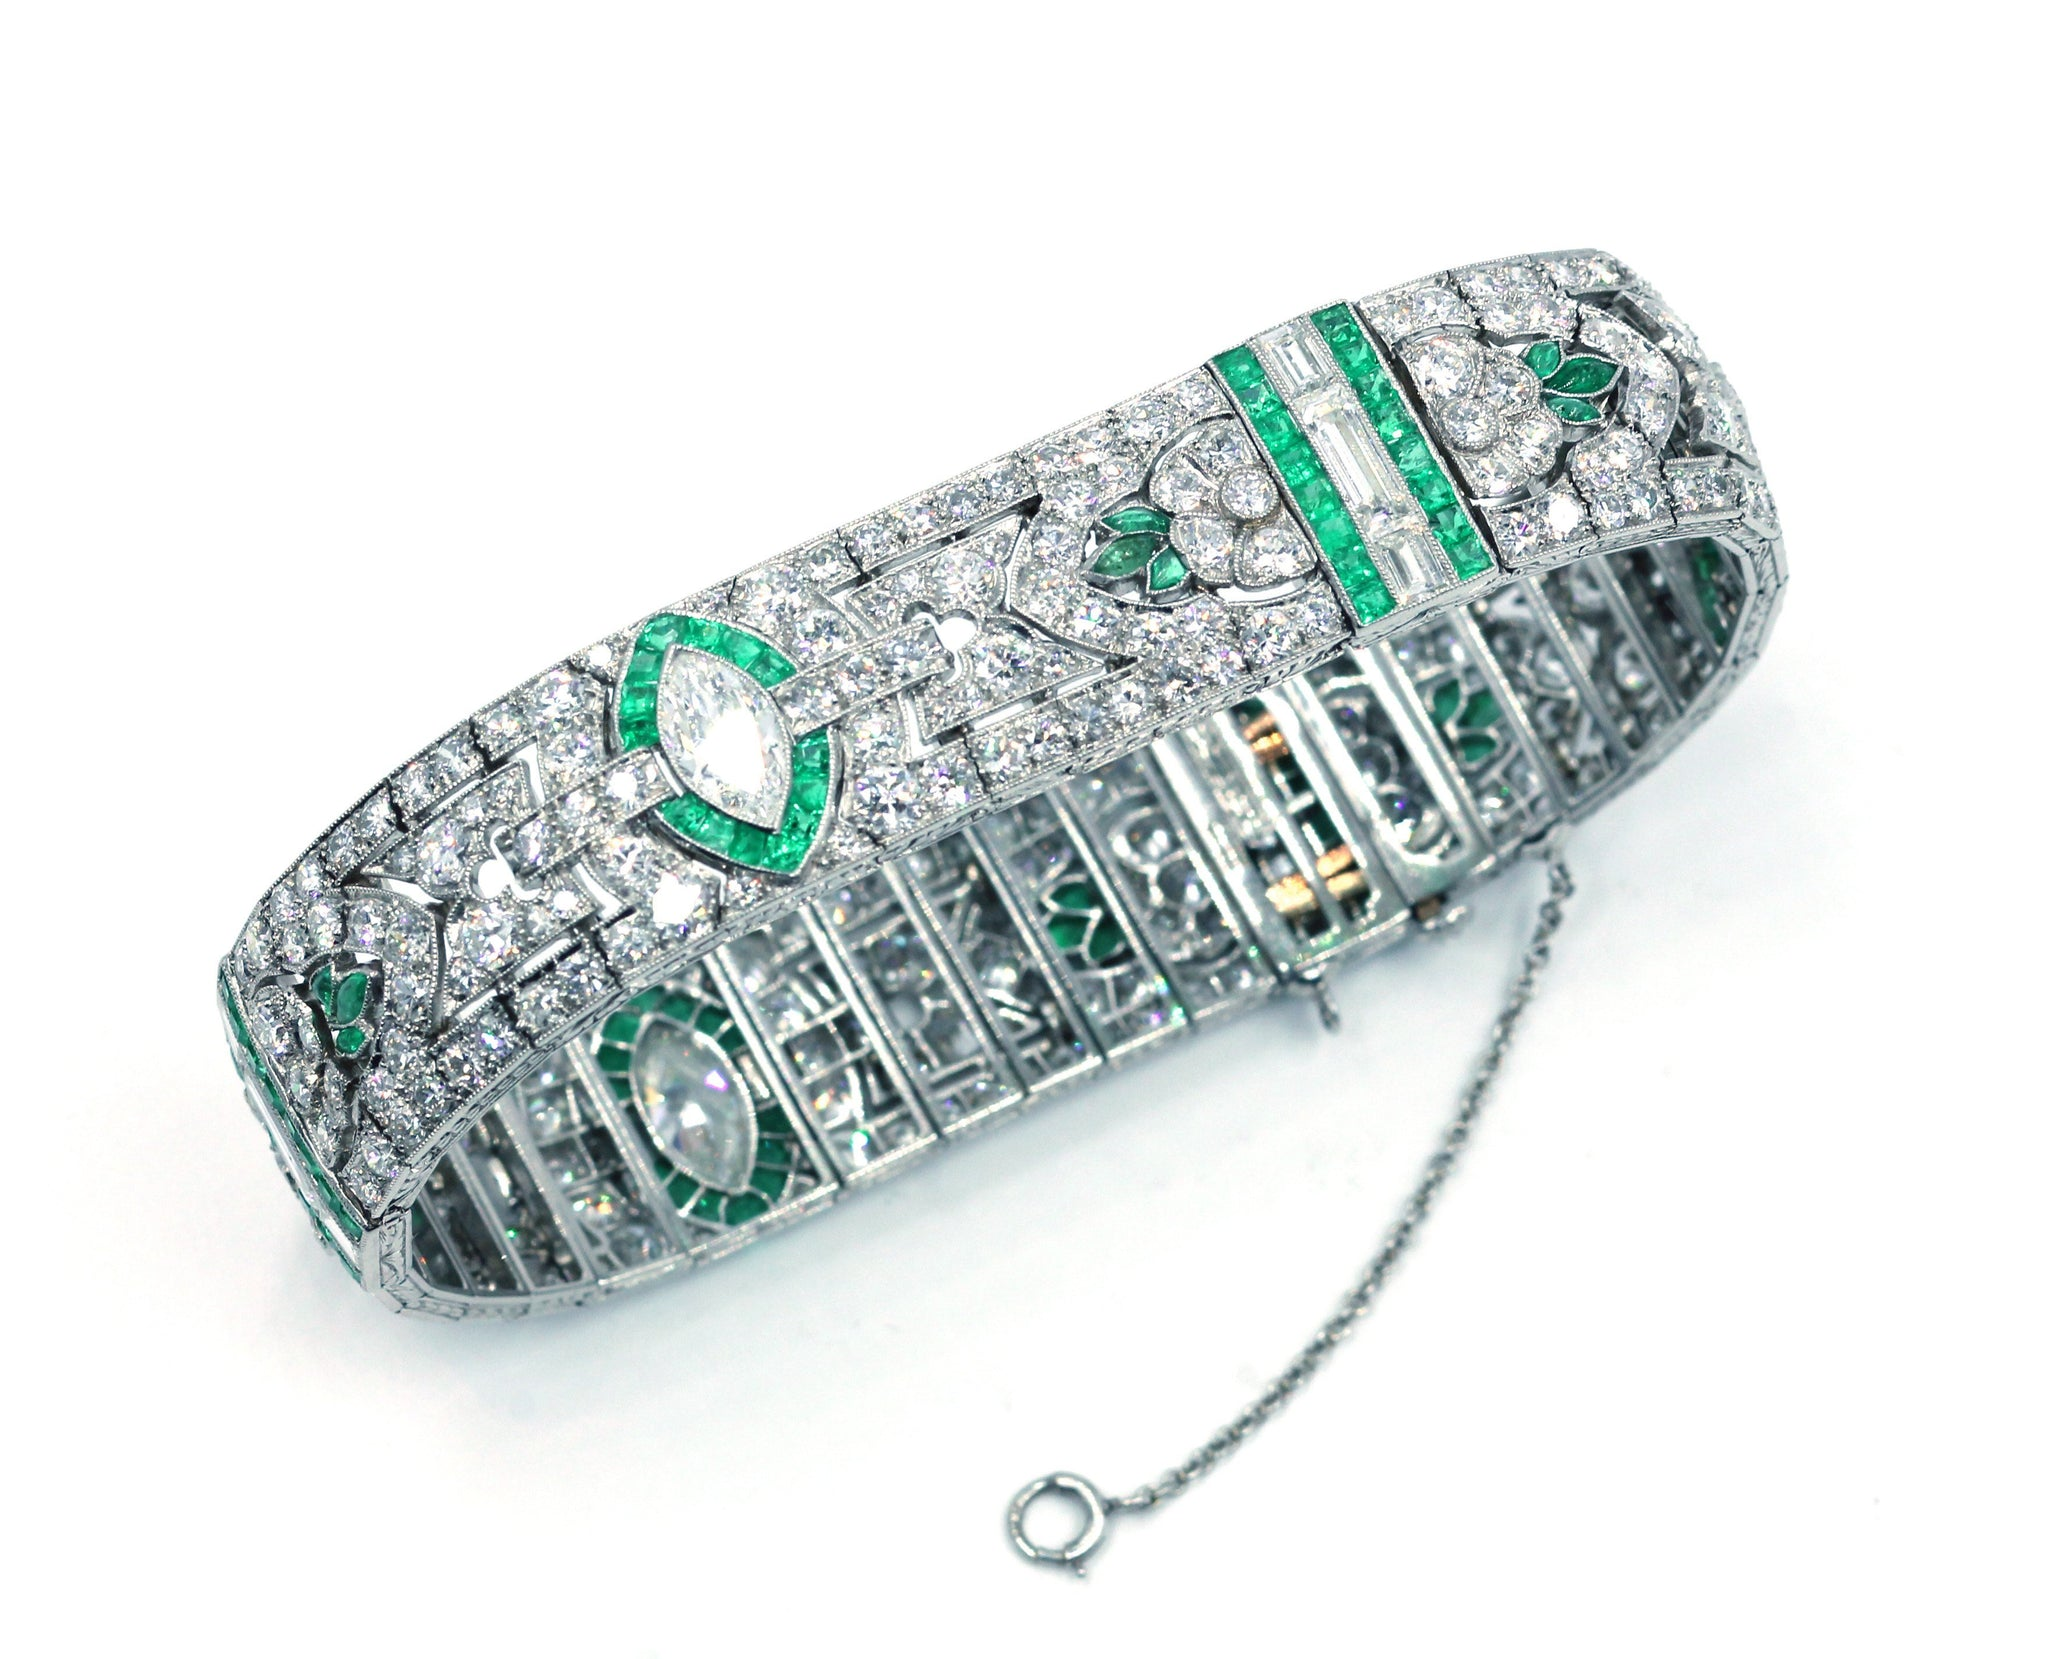 Vintage Deco Diamond and Emerald Bracelet, SOLD